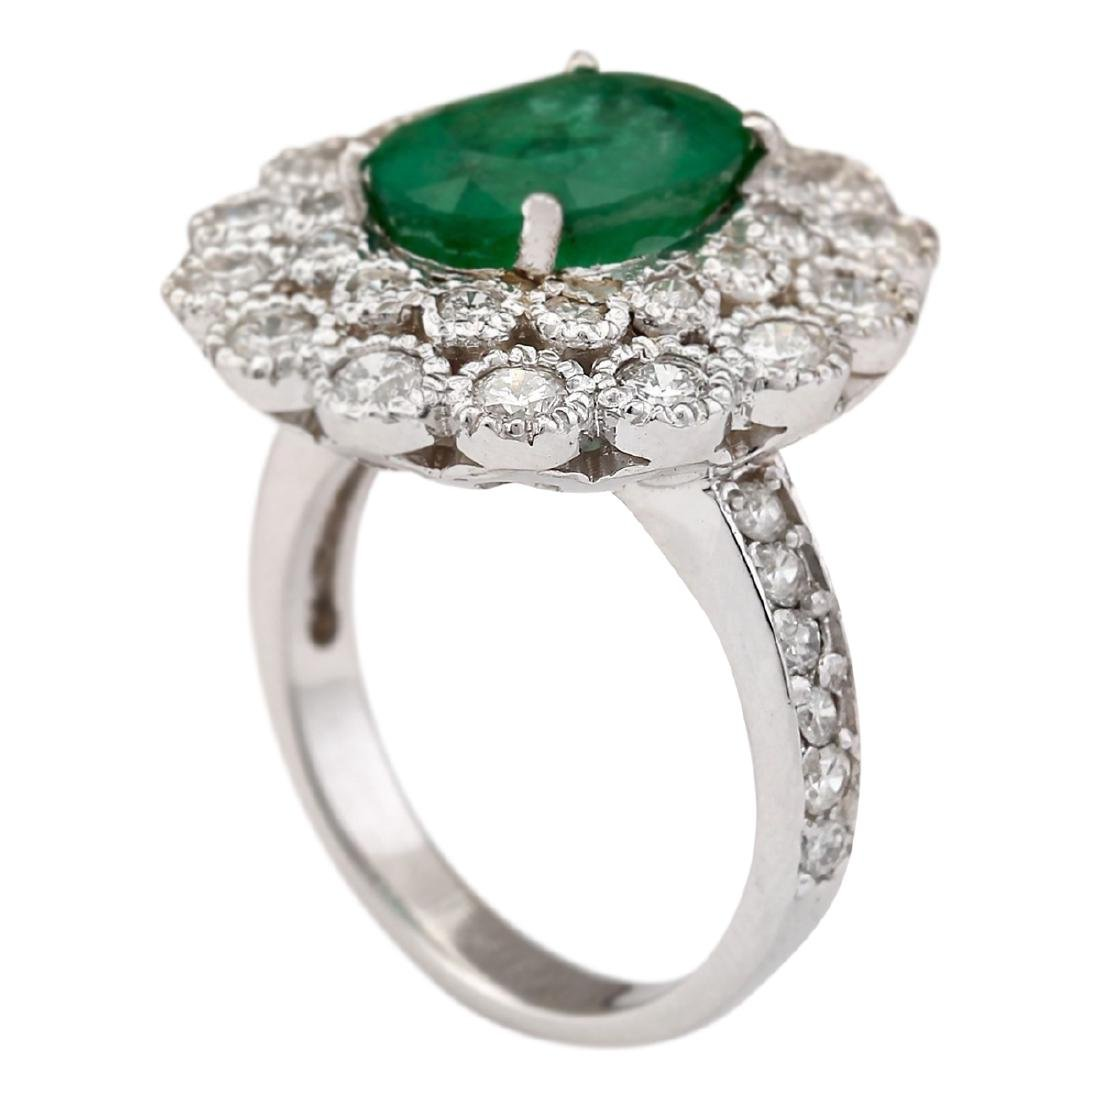 4.43 CTW Natural Emerald And Diamond Ring In 18K White - 3